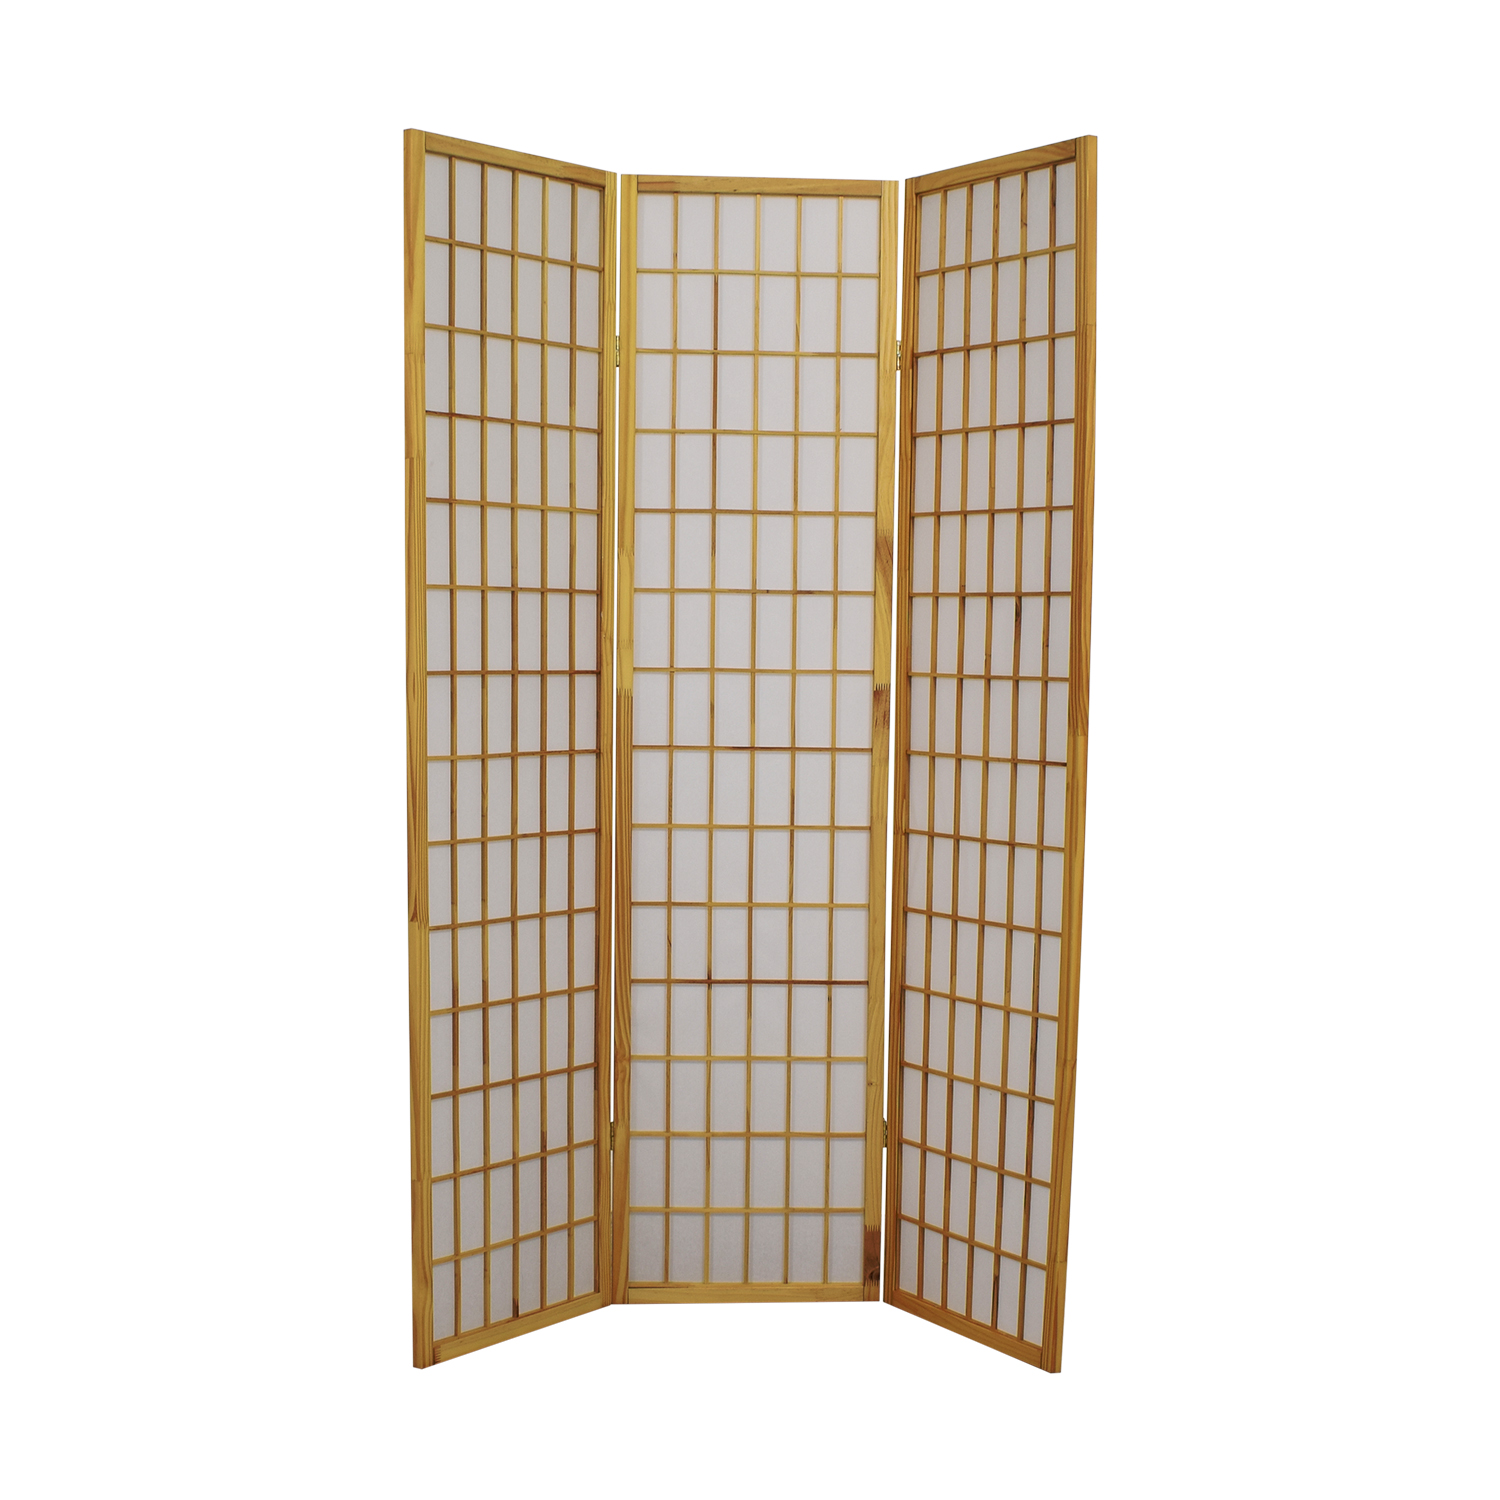 Neutral Room Divider dimensions